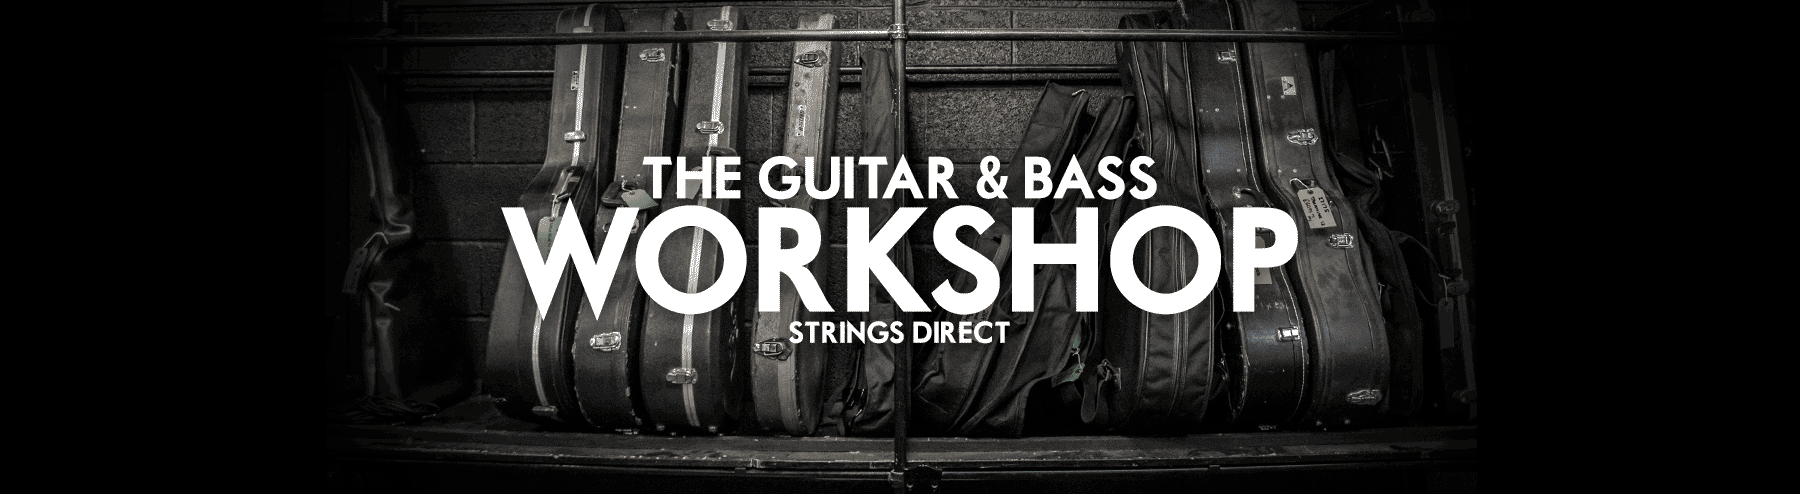 Strings Direct Guitar Workshop